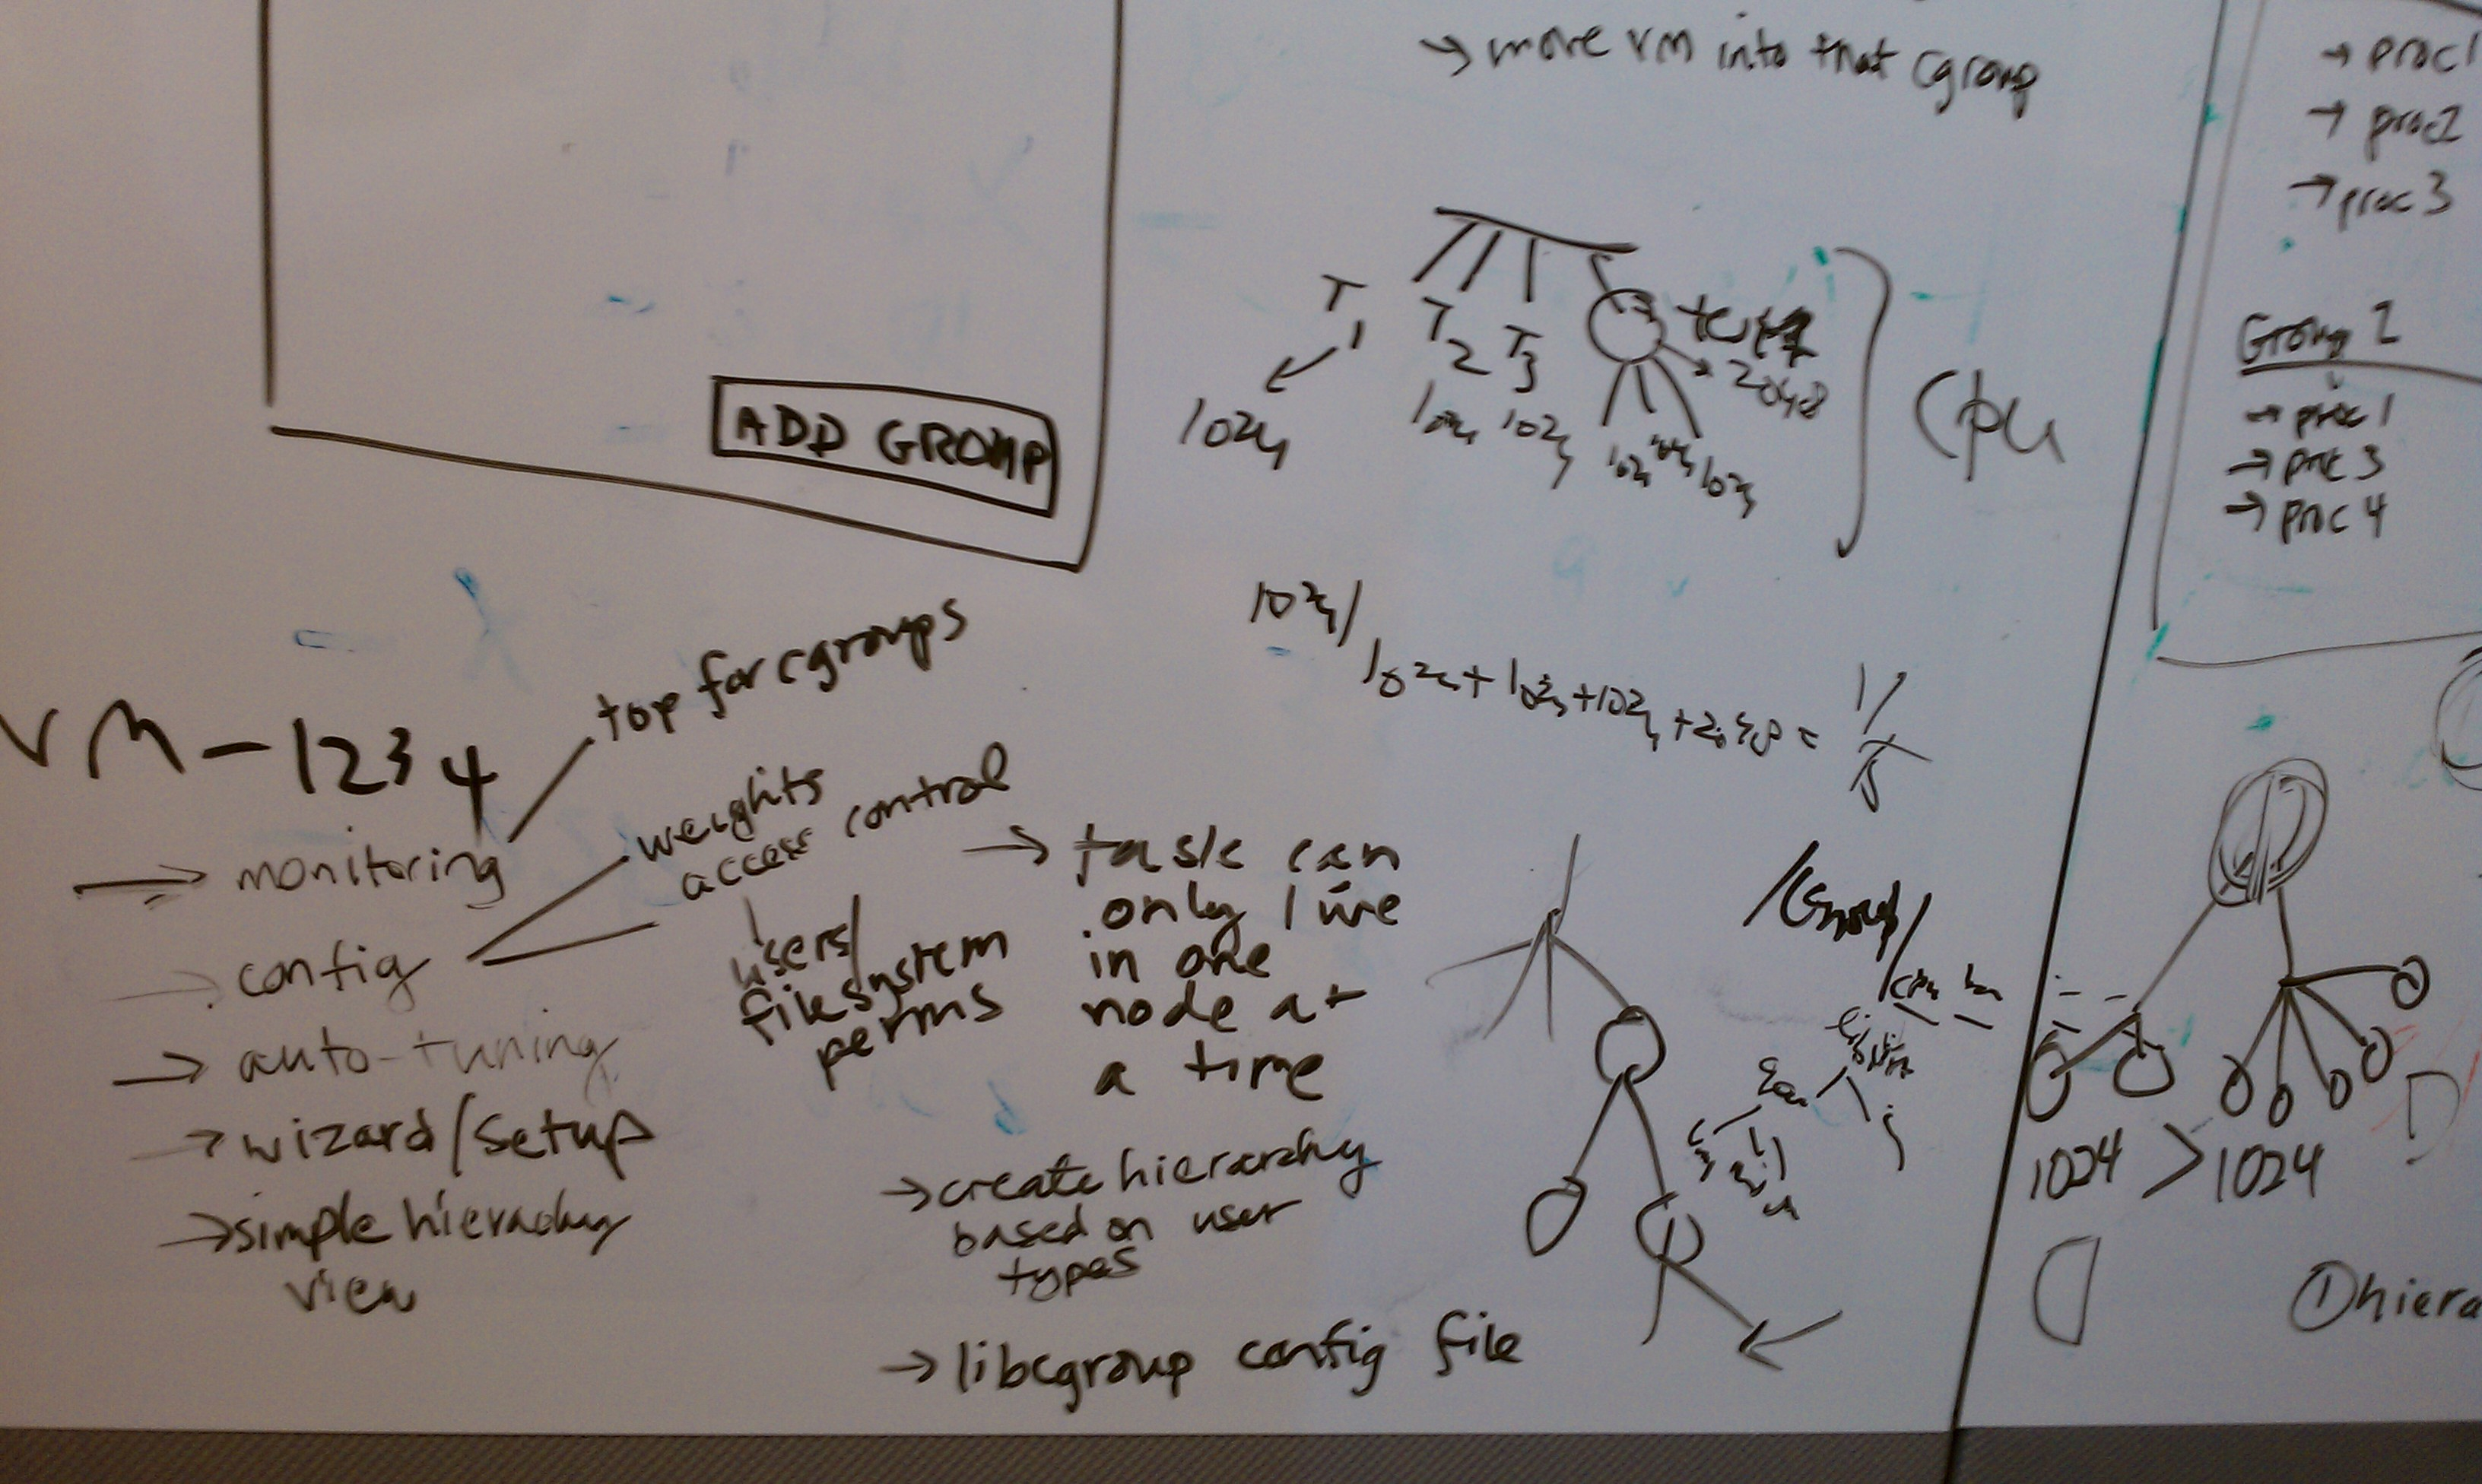 Cgroups-early-whiteboard-2.jpg